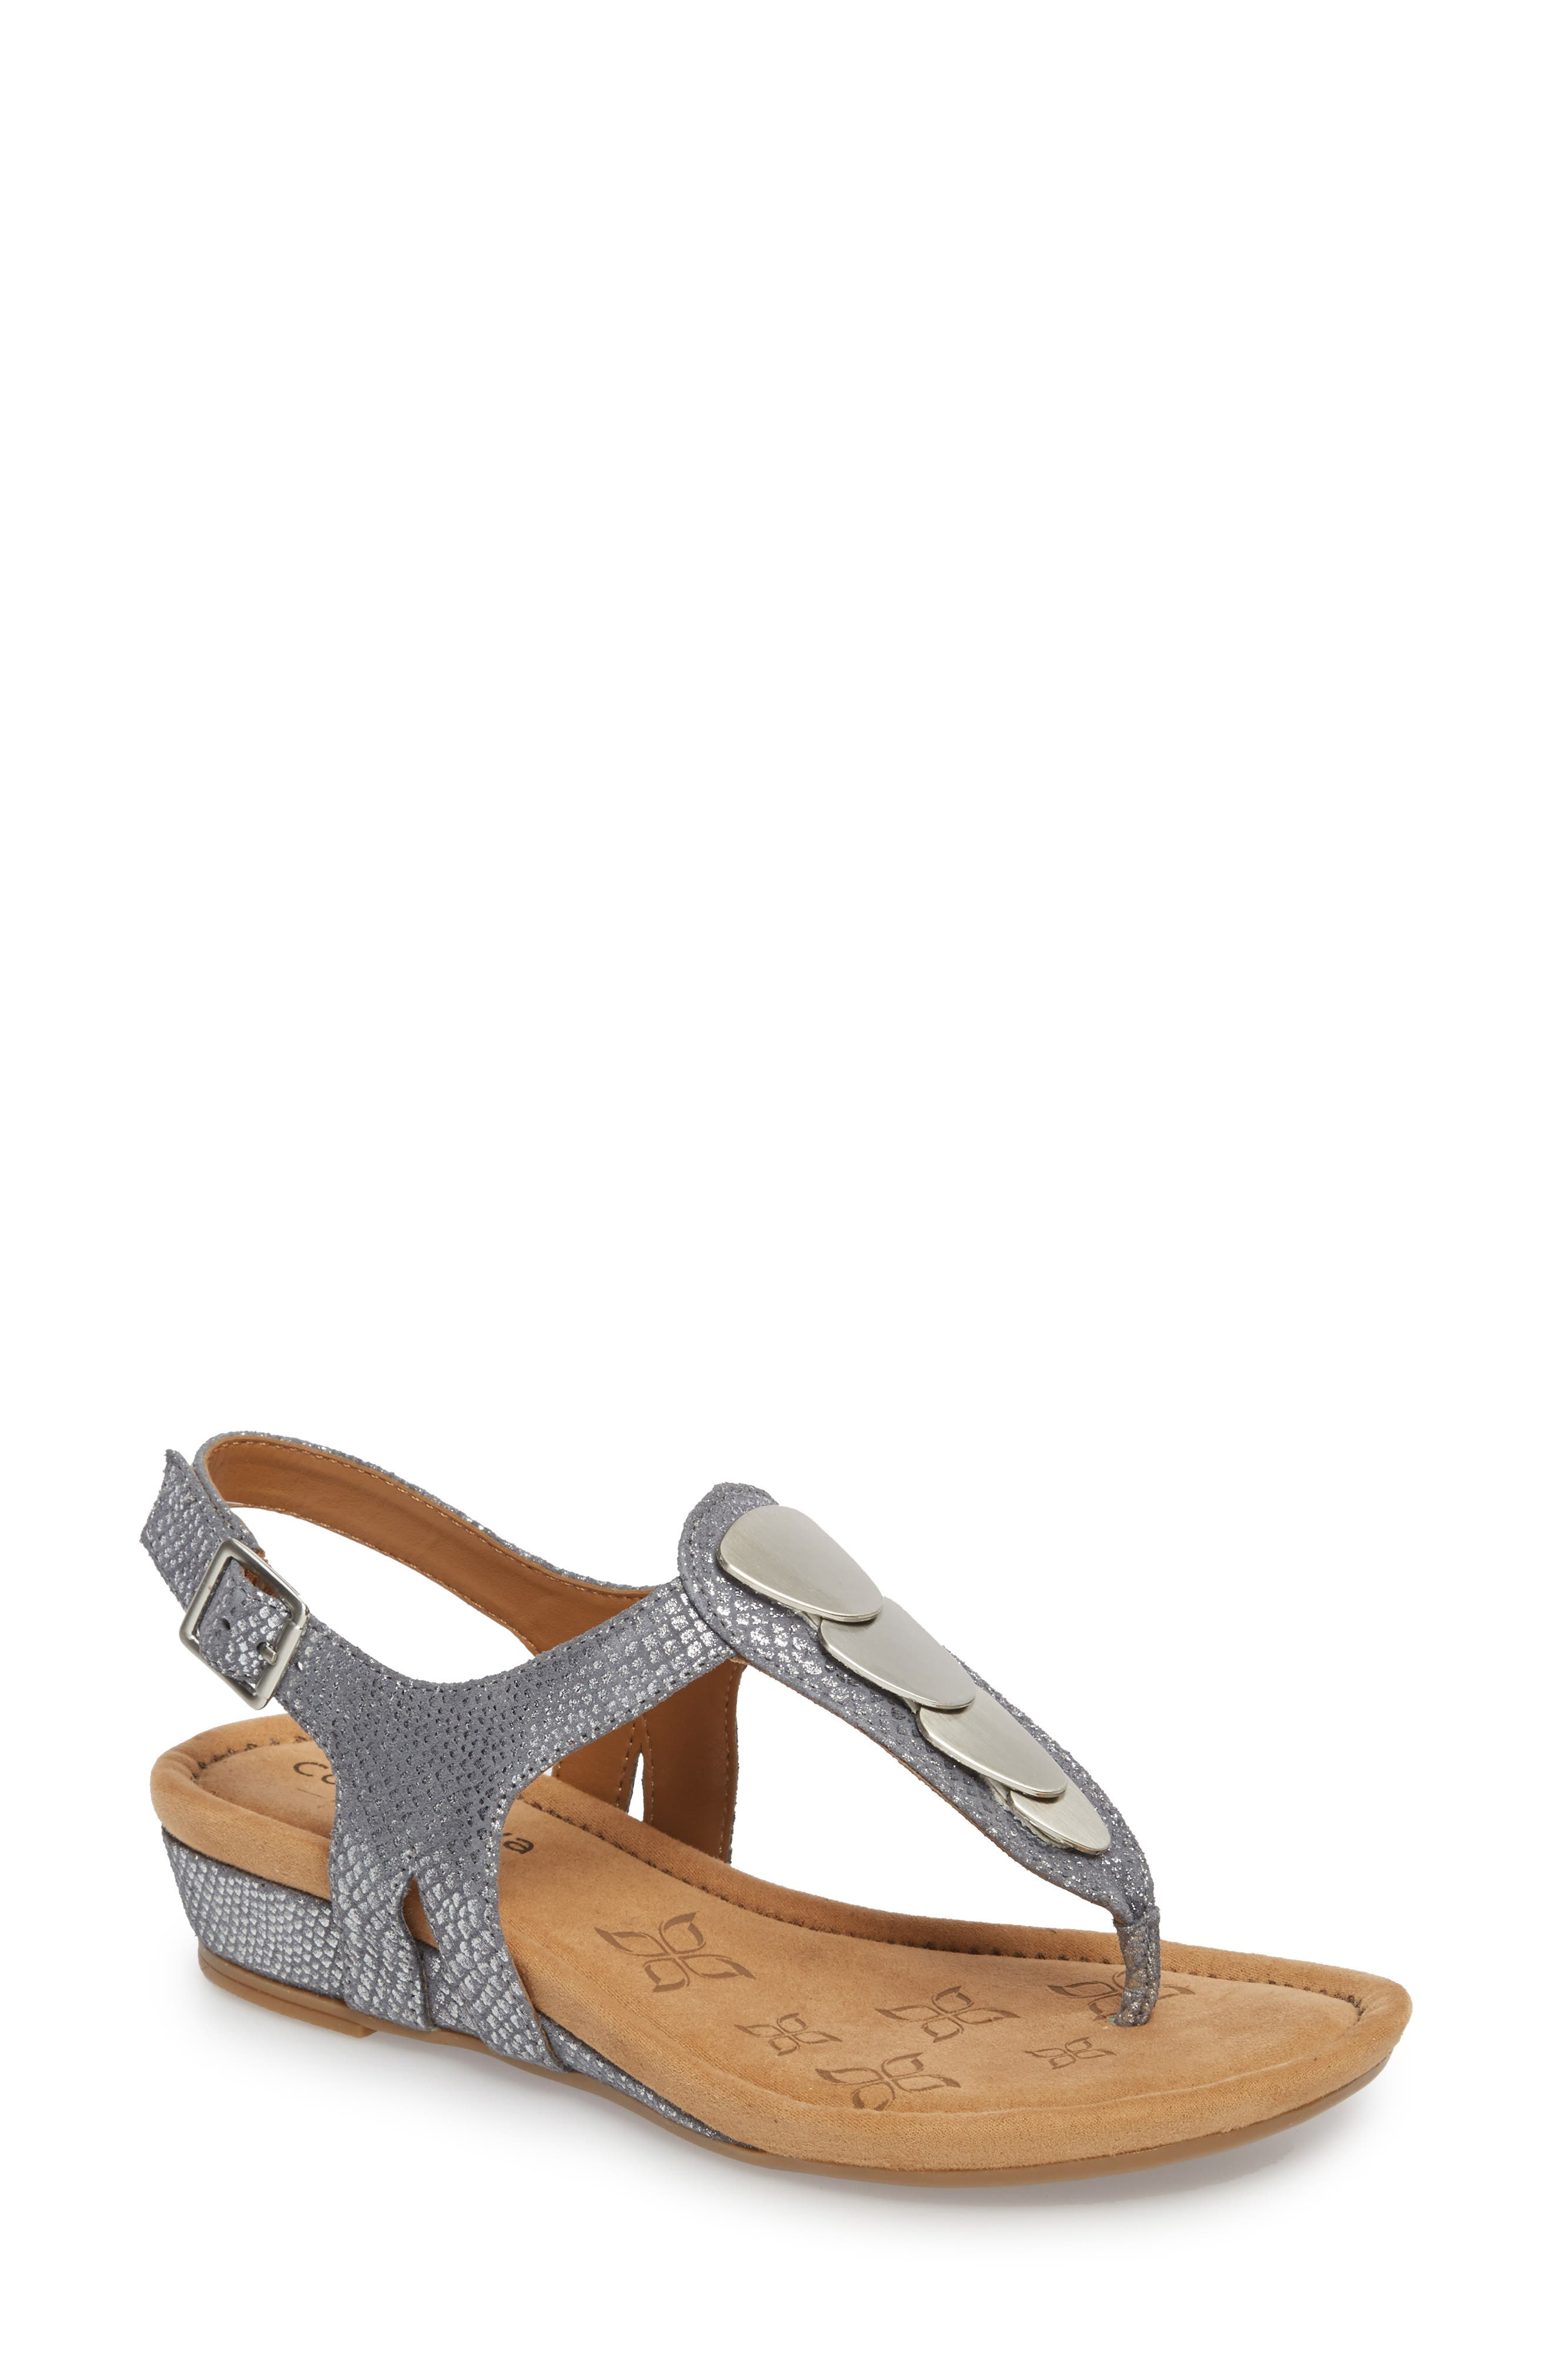 Summit Wedge Sandal,                         Main,                         color, PEWTER SUEDE